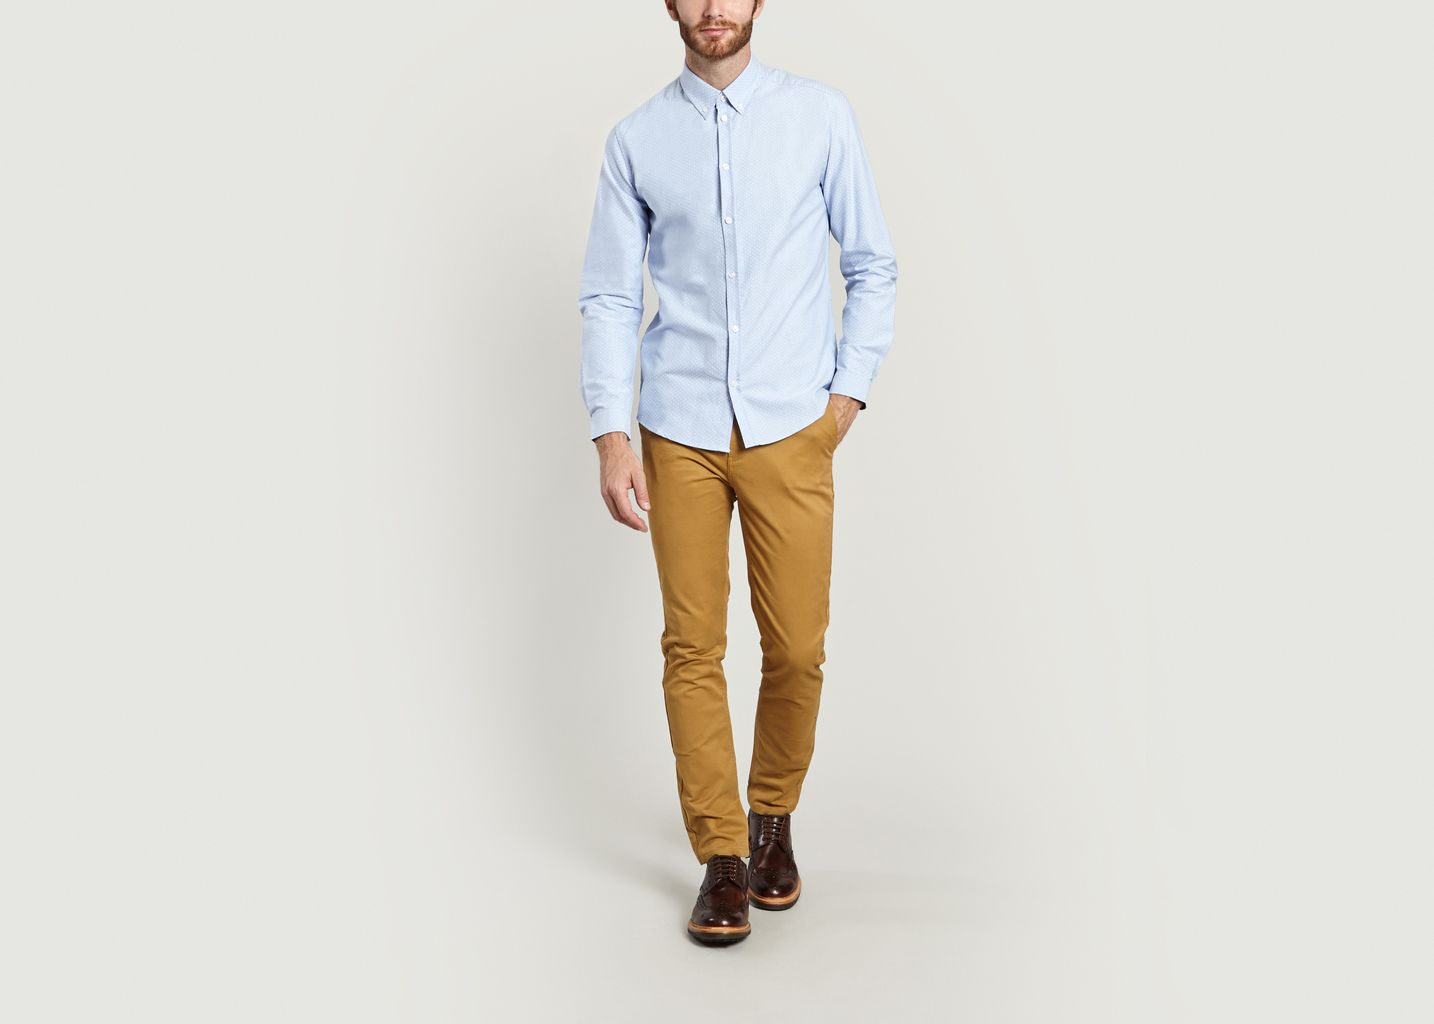 Chemise Noos Oxford Dot - SUIT